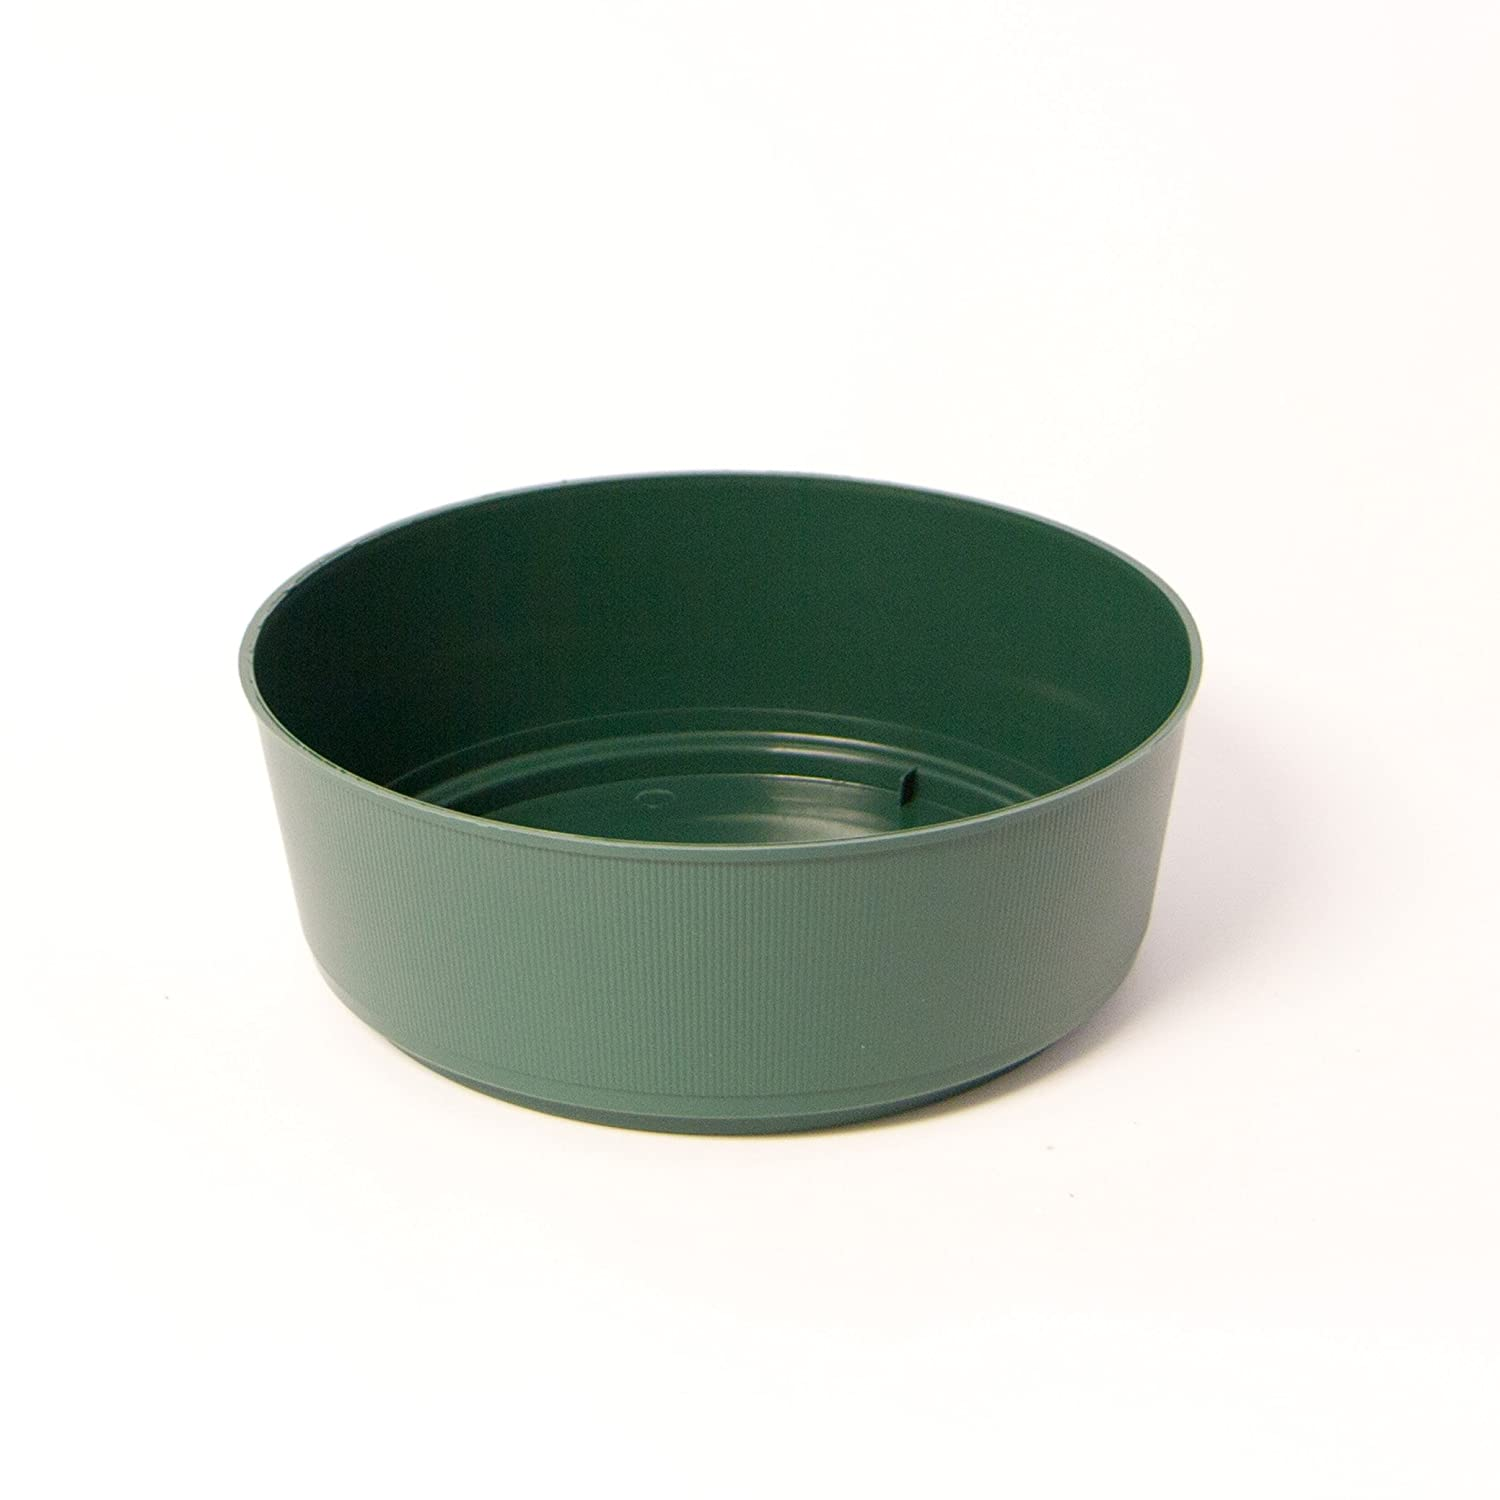 Green Junior Bowl for Cyclinder Floral Foam Qty 25